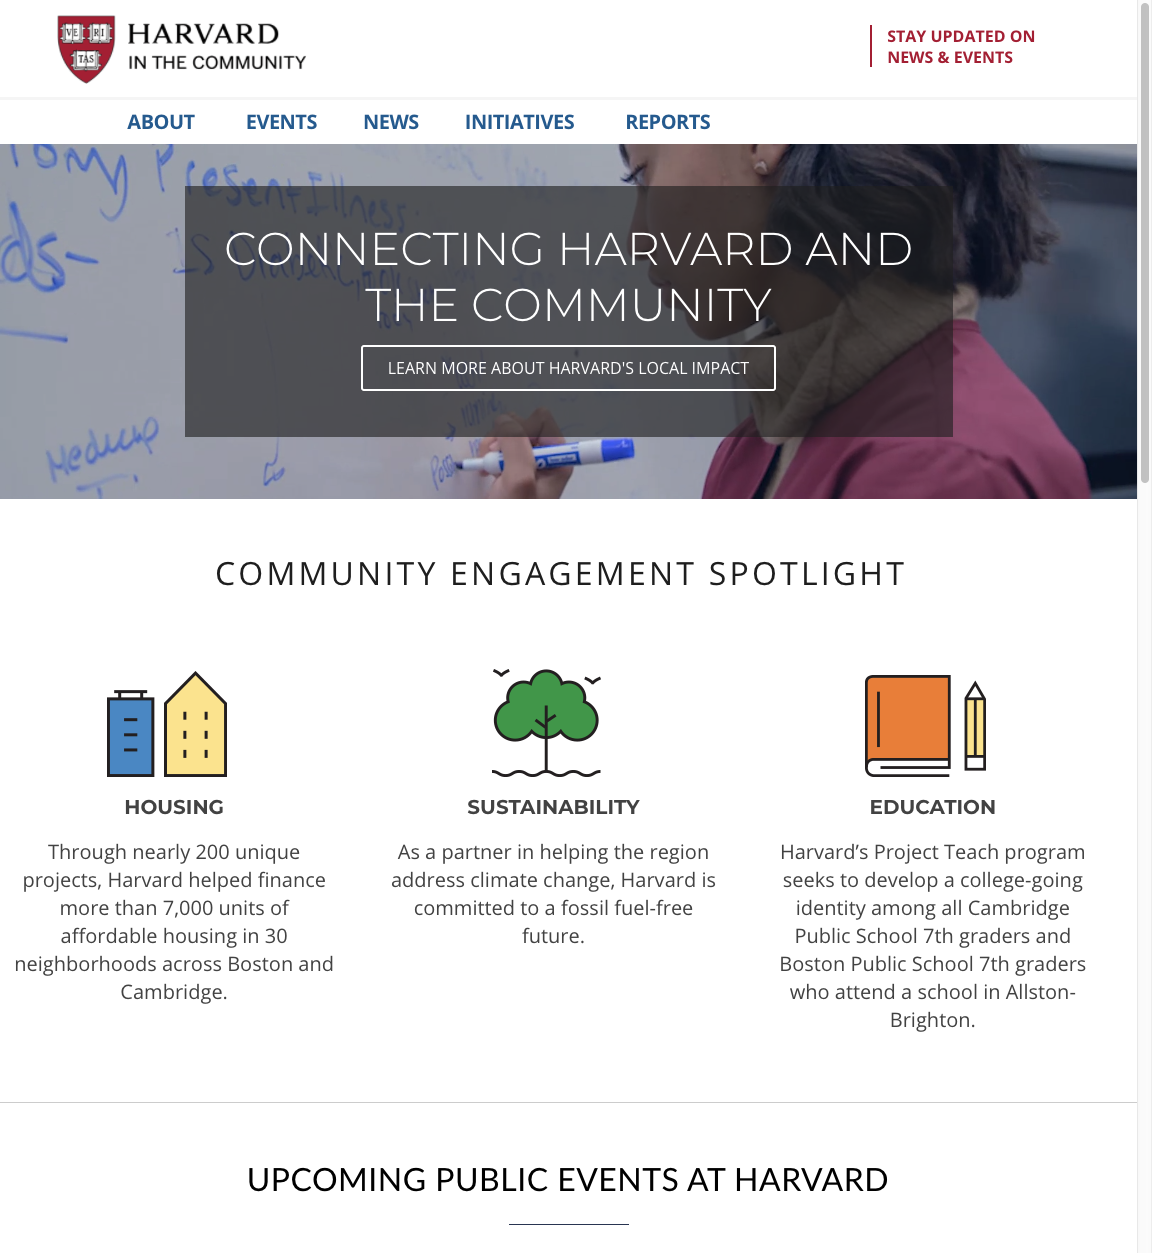 Harvard in the Community